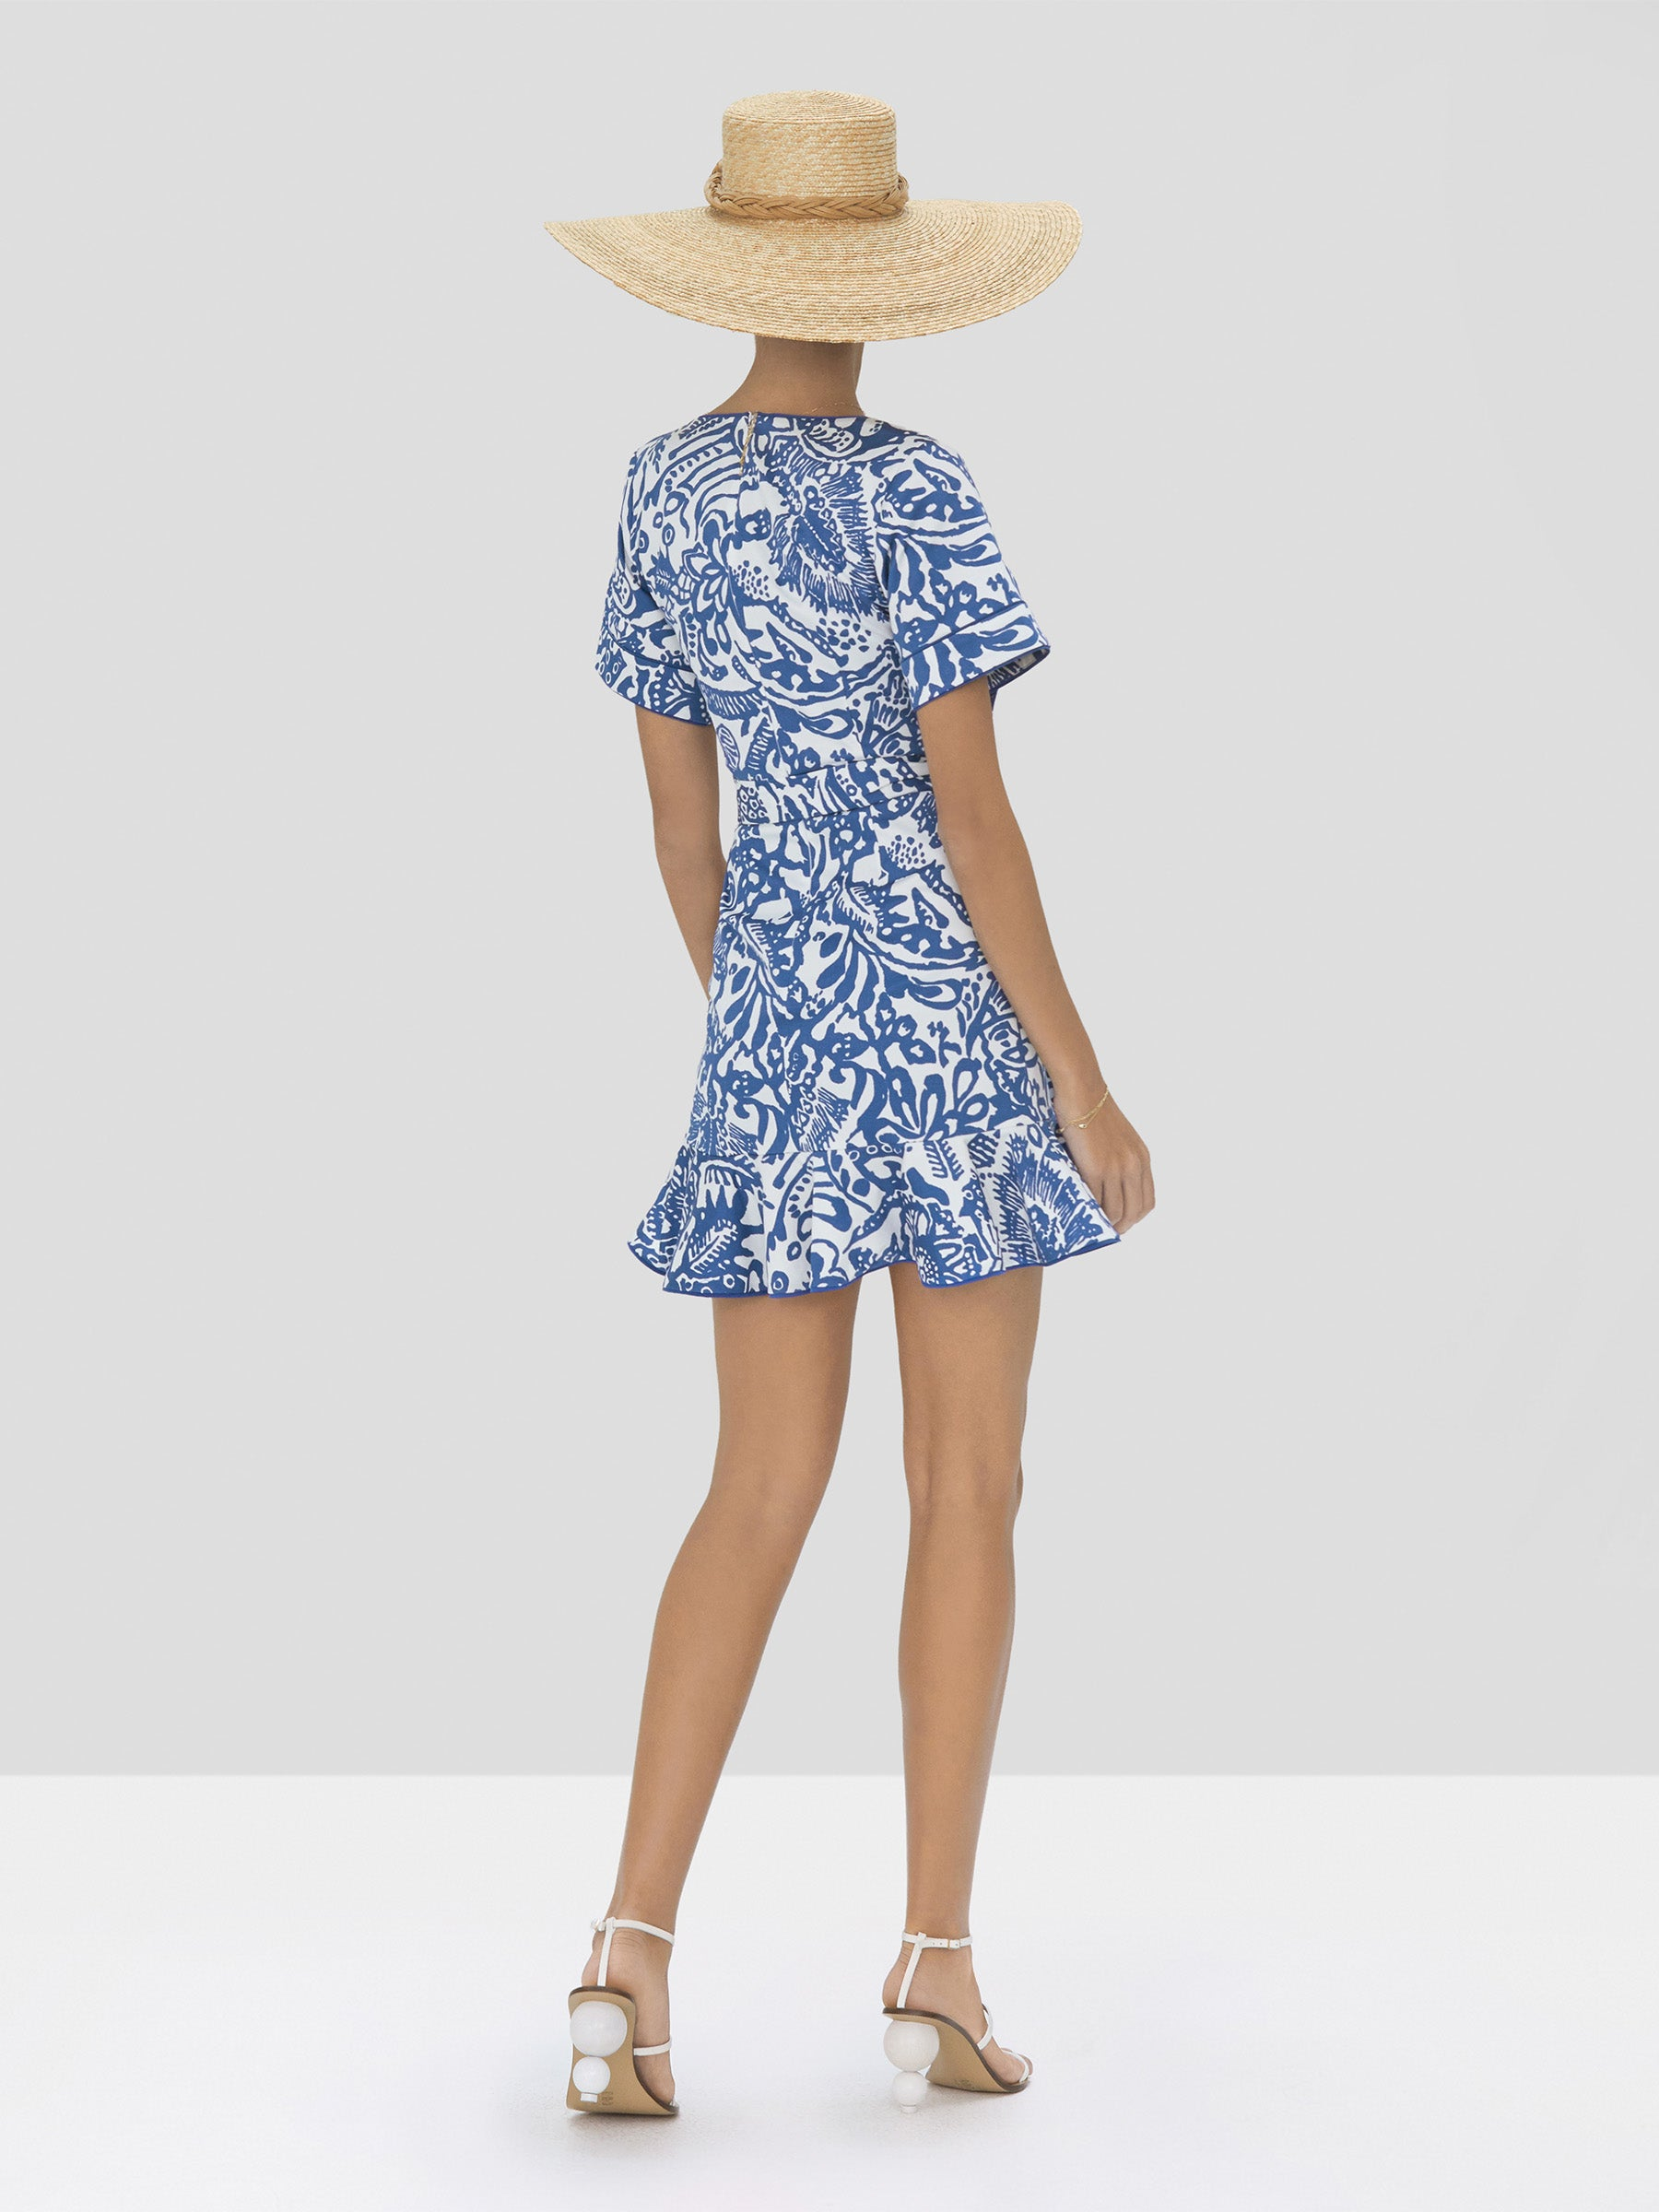 Alexis Berenna Dress in Tropical Blue from Spring Summer 2020 Collection - Rear View